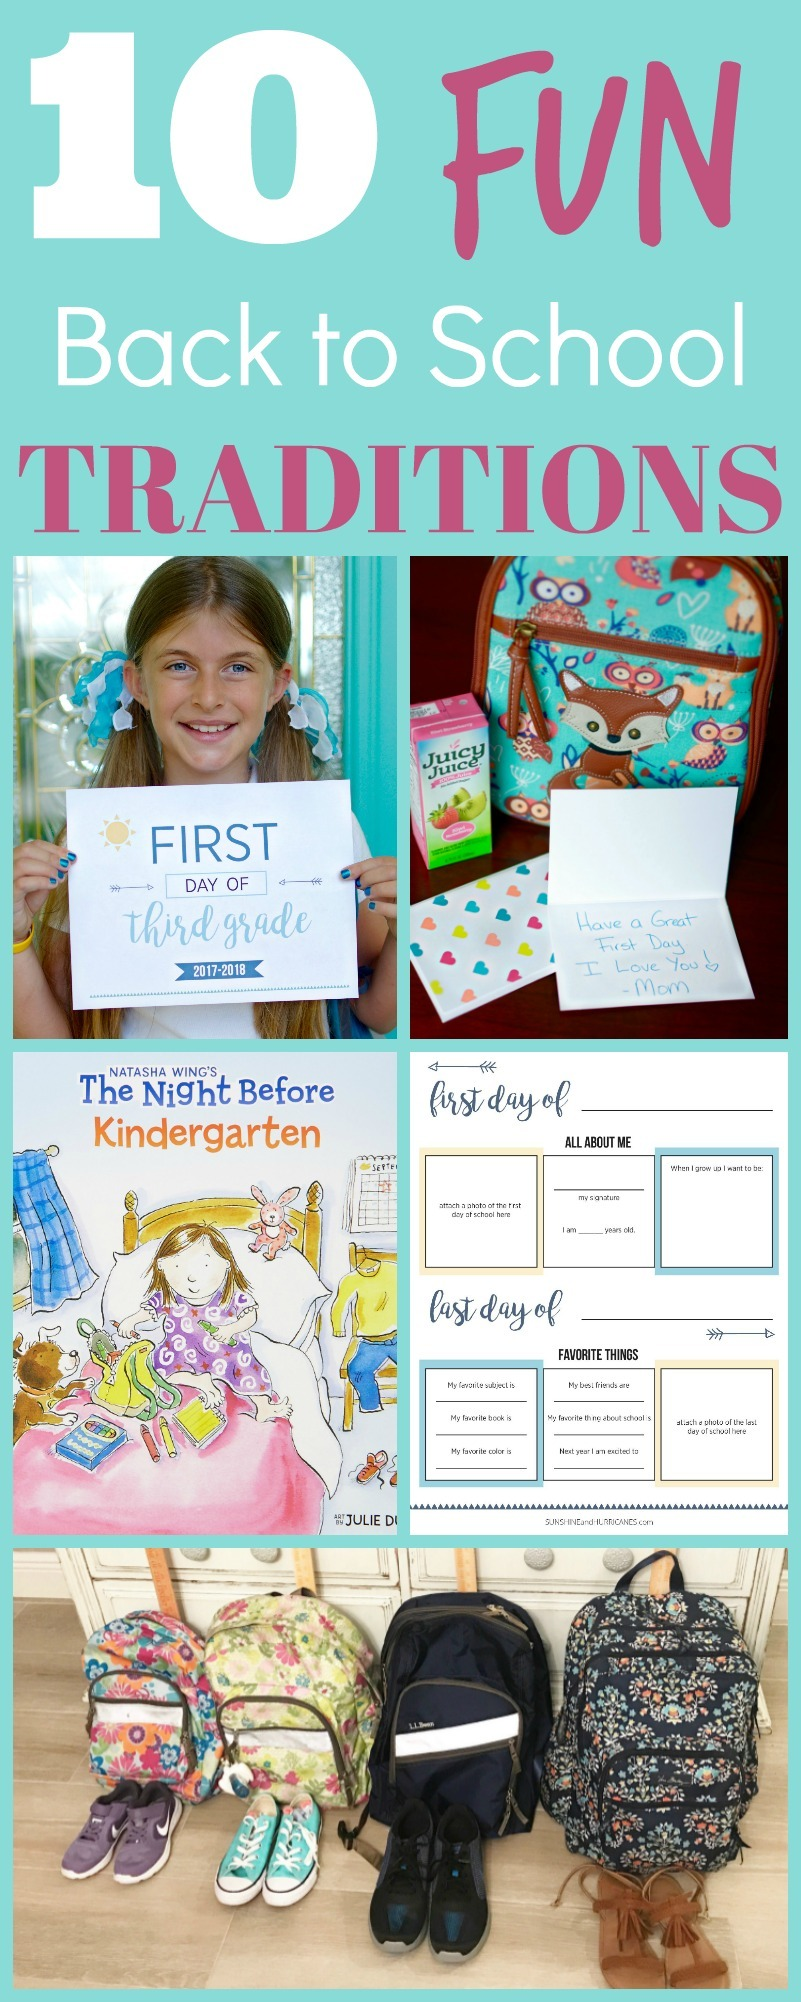 10 Fun and Meaningful Back to School Traditions for Your Family. Try one or try them all, it's a great way to start the first day of school off on the right foot. Back to School Traditions from SunshineandHurricanes.com